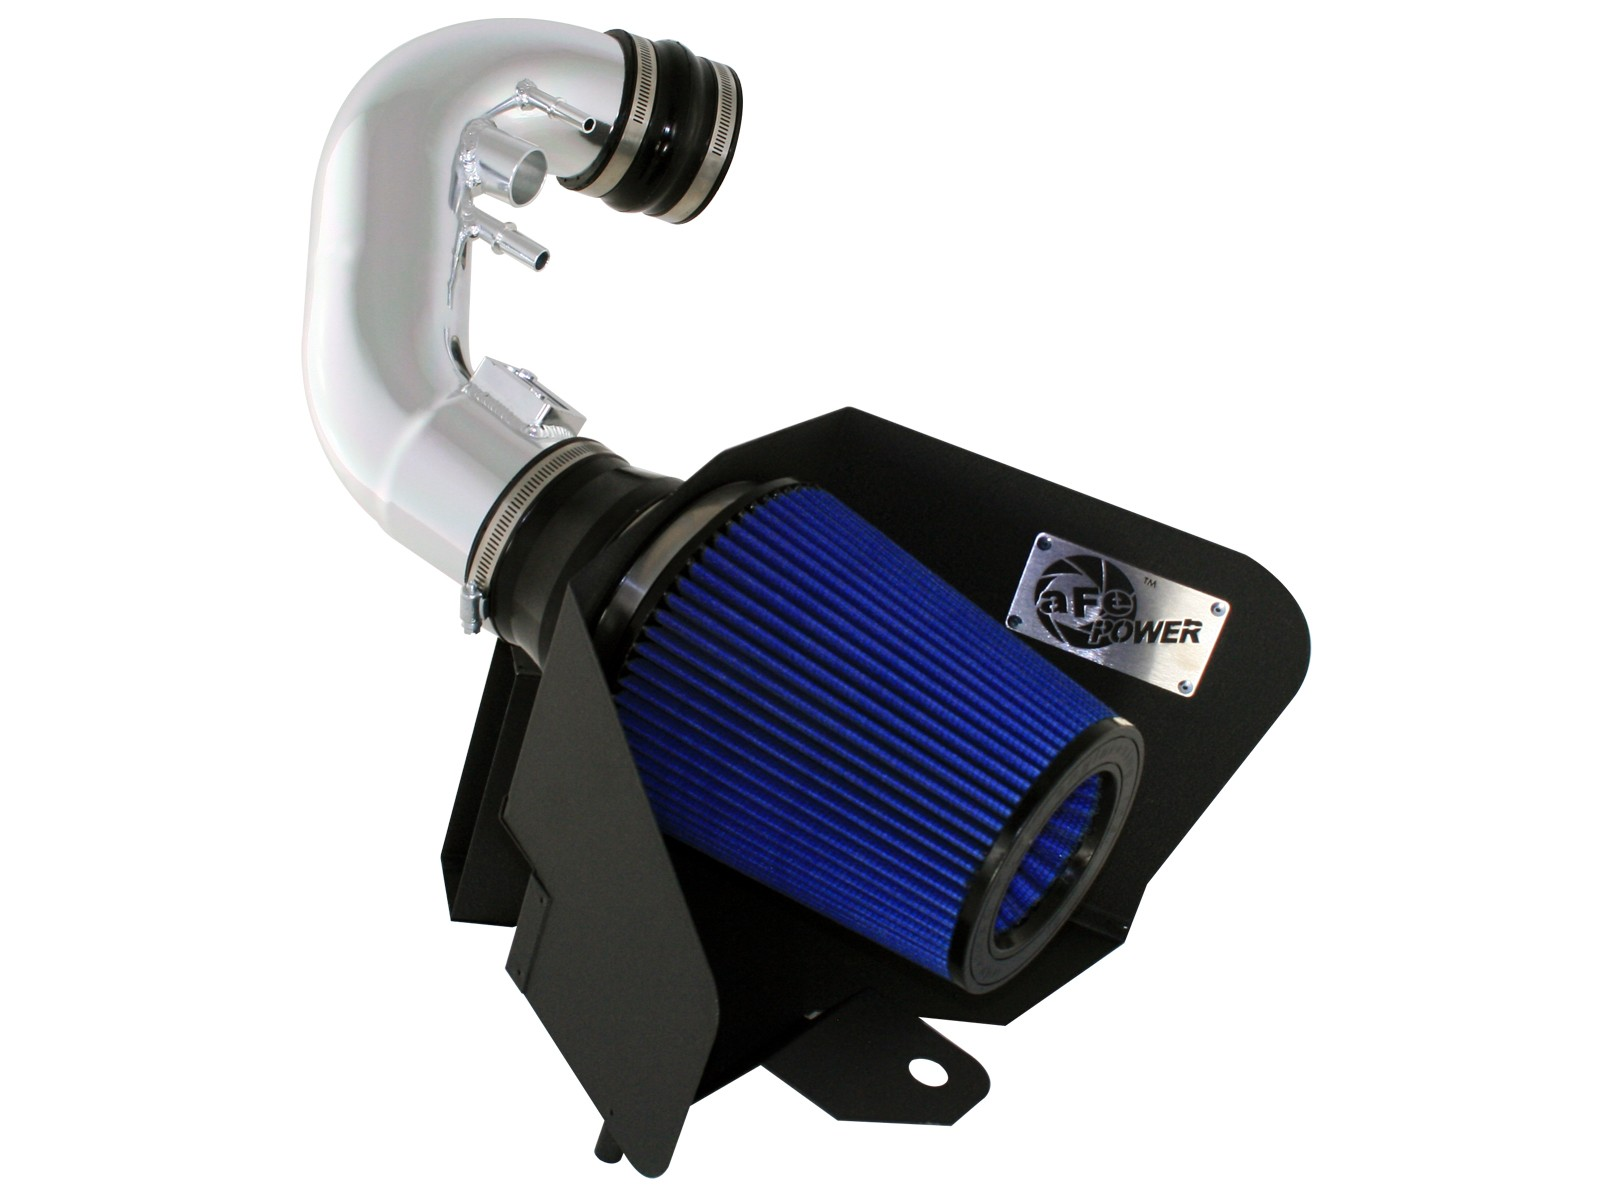 aFe POWER 54-11982-P Magnum FORCE Stage-2 Pro 5R Cold Air Intake System